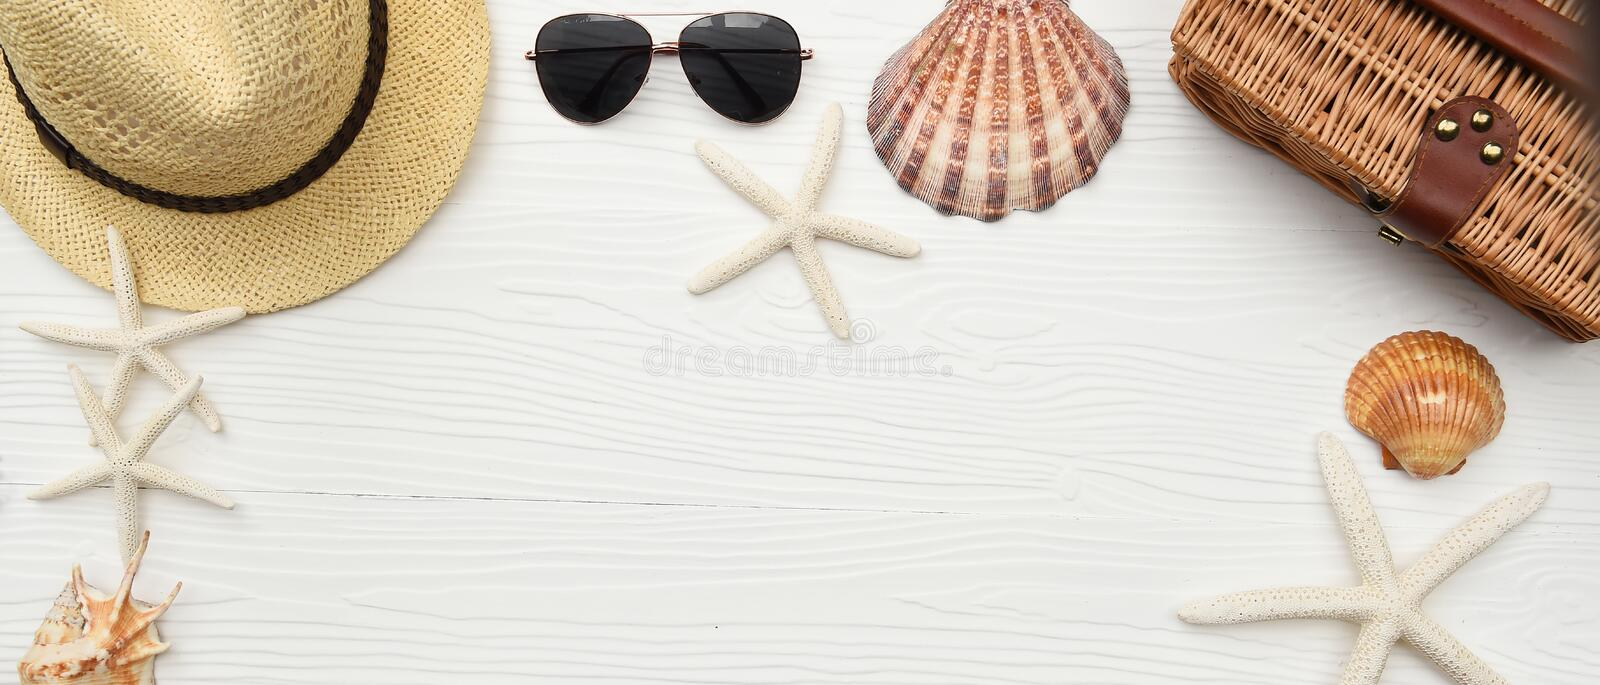 Summer hat and sunglasses with sandals and shells stock images